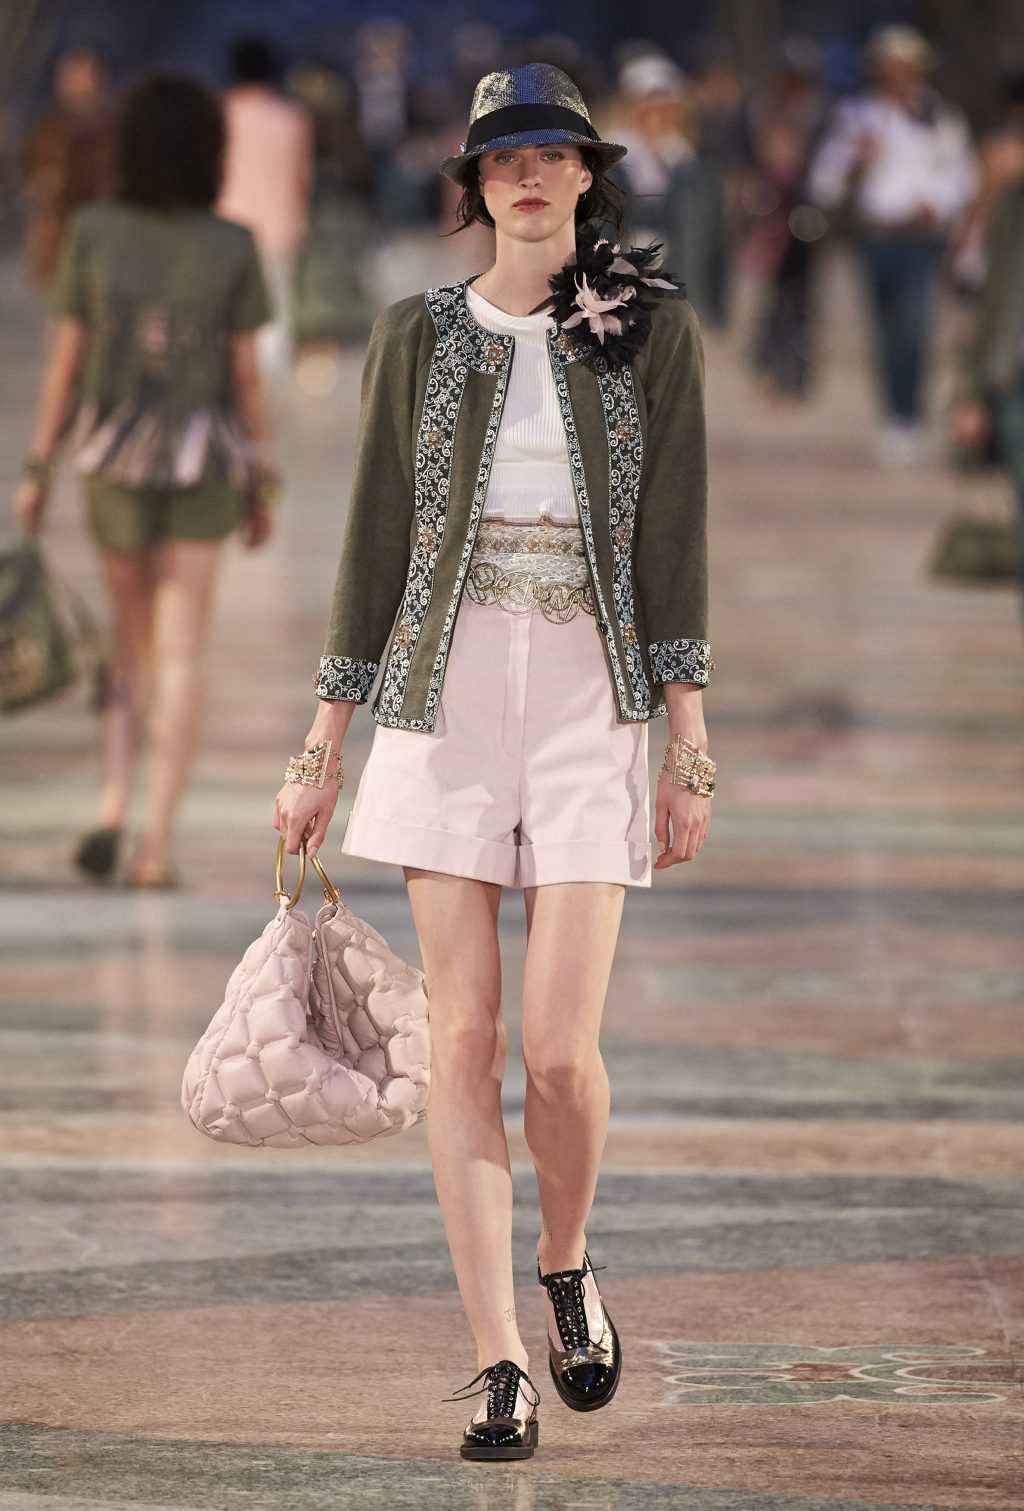 Chanel pre-summer 2017 shorts